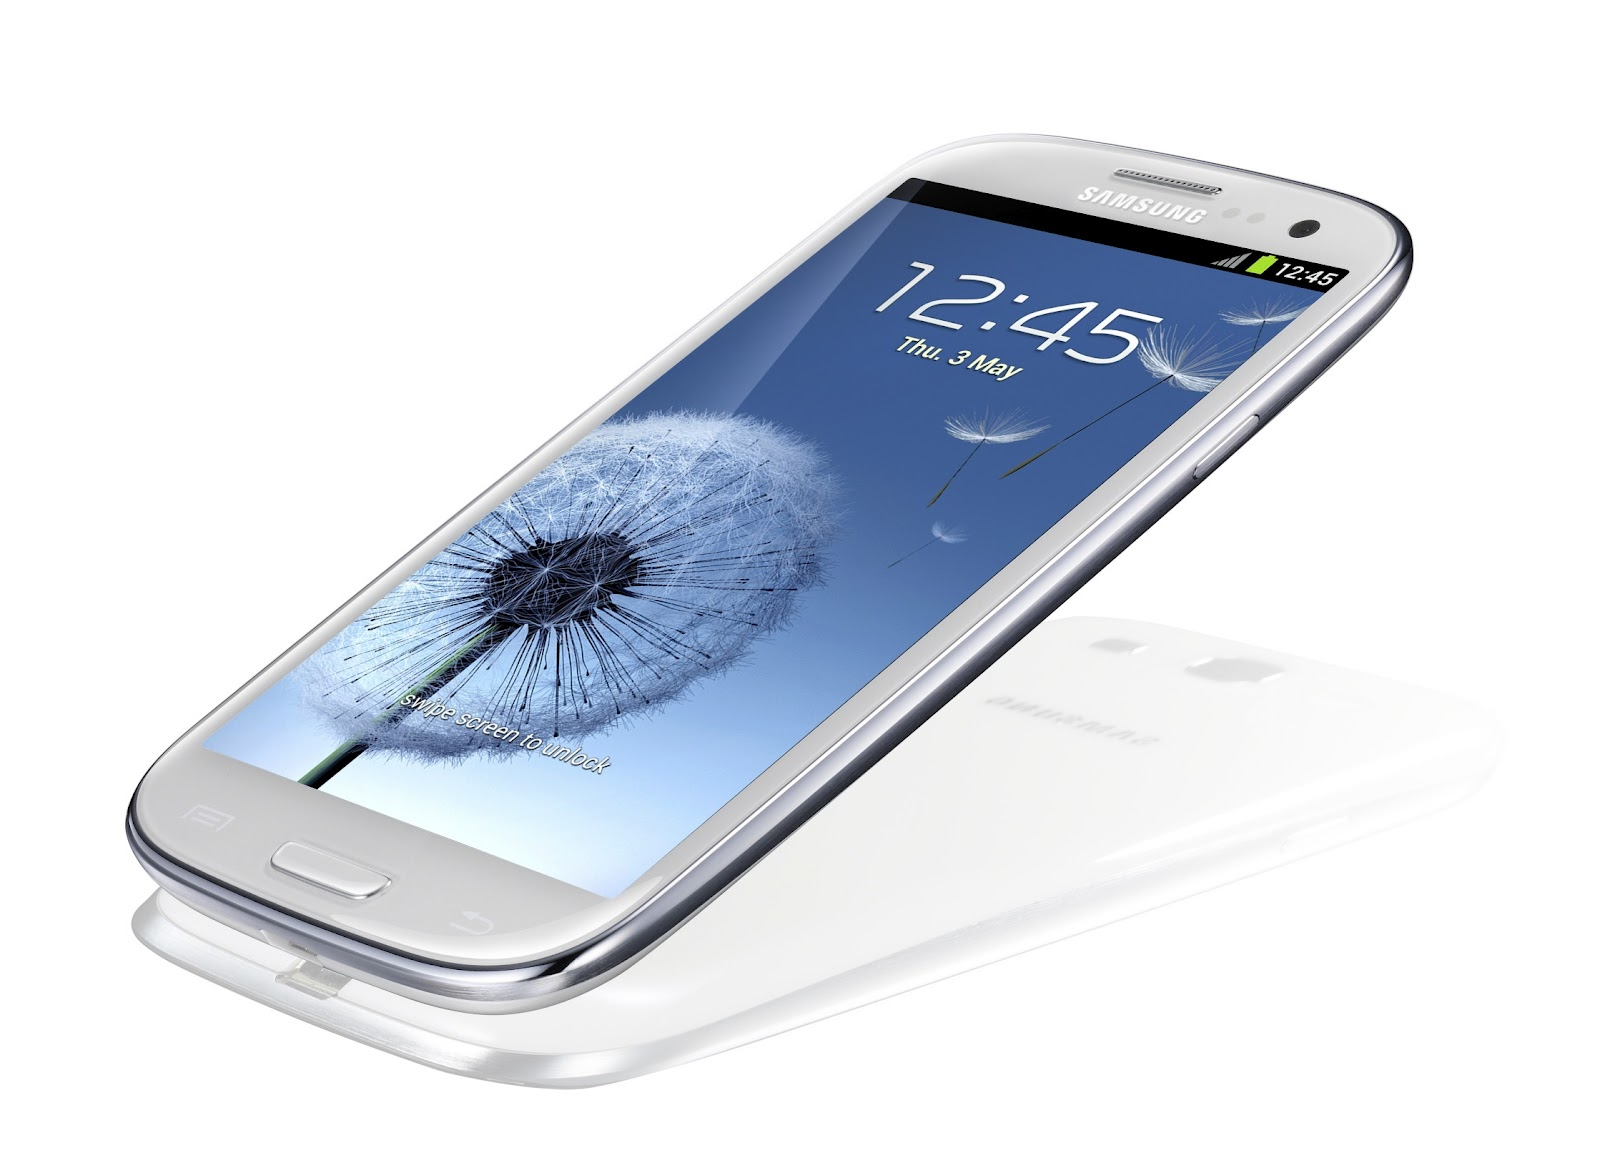 samsung galaxy s iii s3 i9300 specifications features price details samsung galaxy s iii. Black Bedroom Furniture Sets. Home Design Ideas